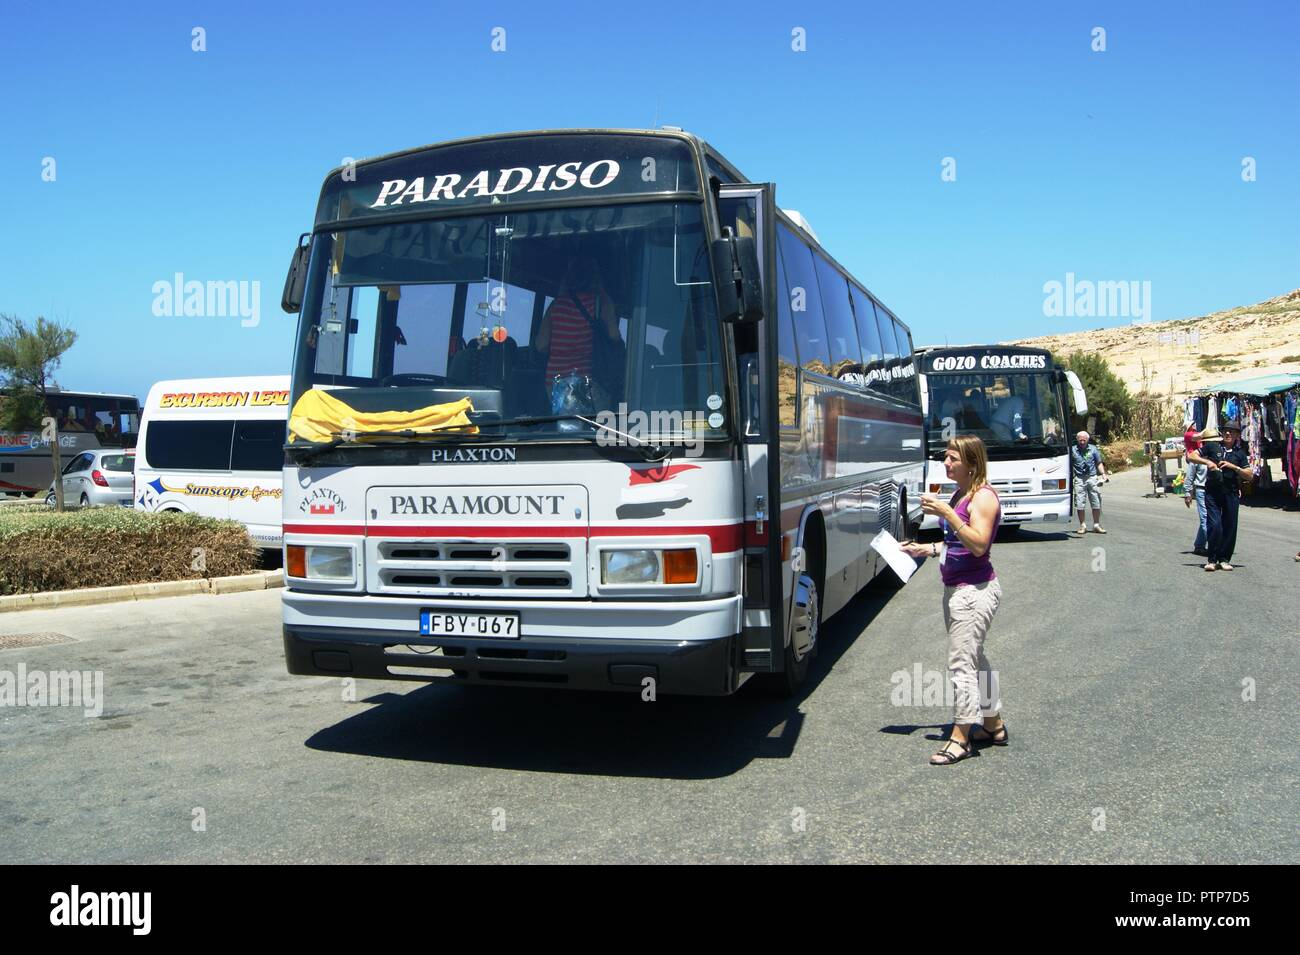 Bedford Plaxton Paramount Coach,of Paradiso on Gozo Malta - Stock Image